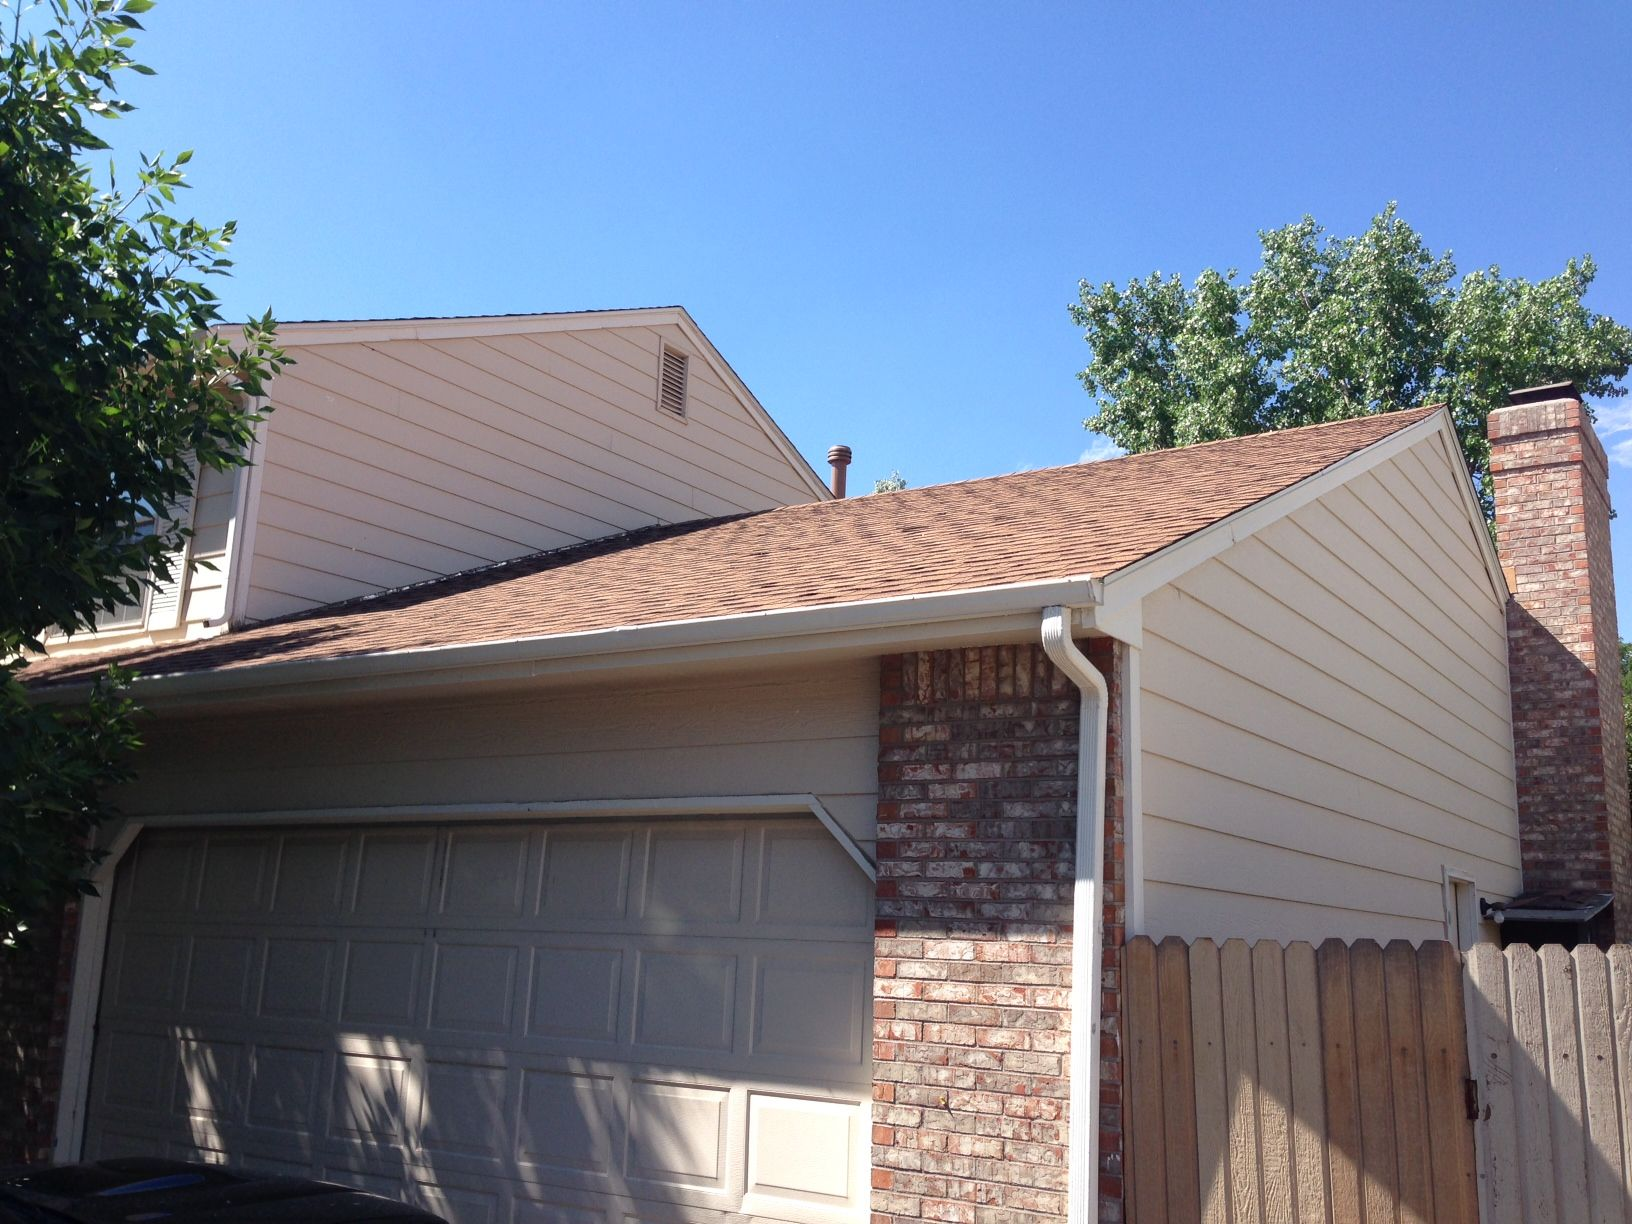 Owens Corning Oakridge Desert Tan Shingles Roof Replacements By